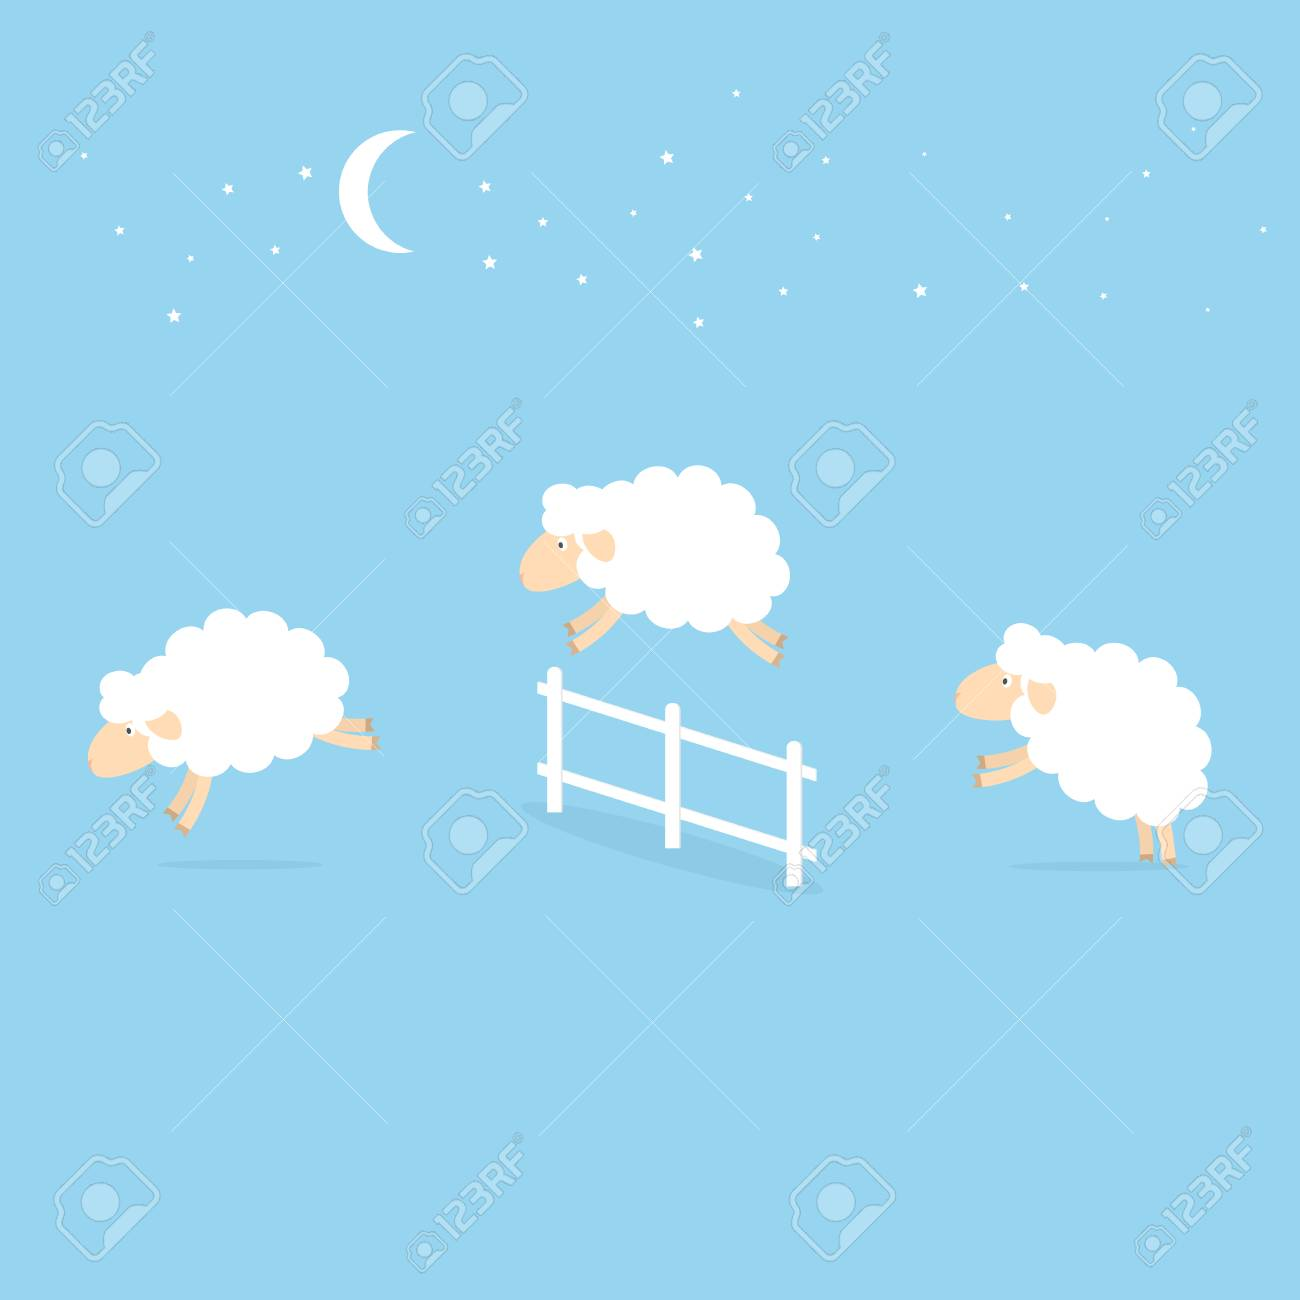 Sheep jumping over the fence. - 91450258